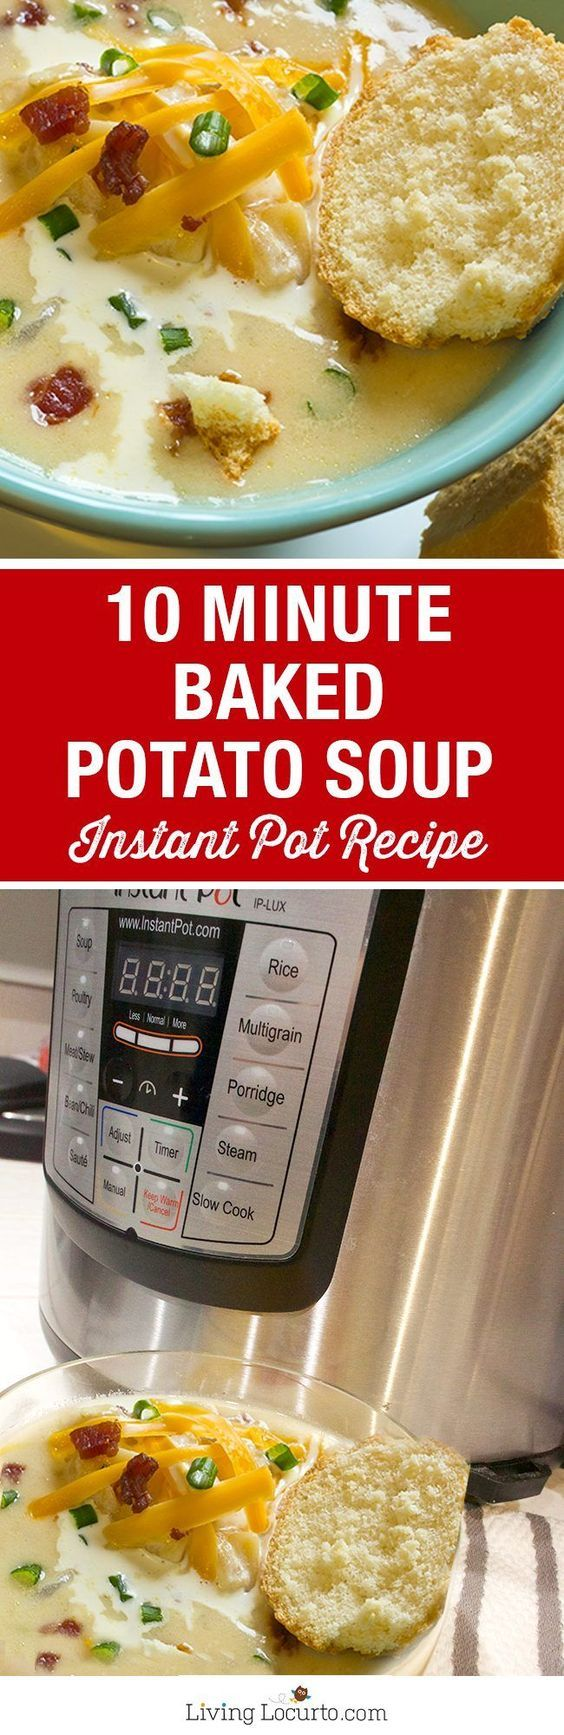 10 Minute Baked Potato Soup is the perfect quick and easy hearty meal ...